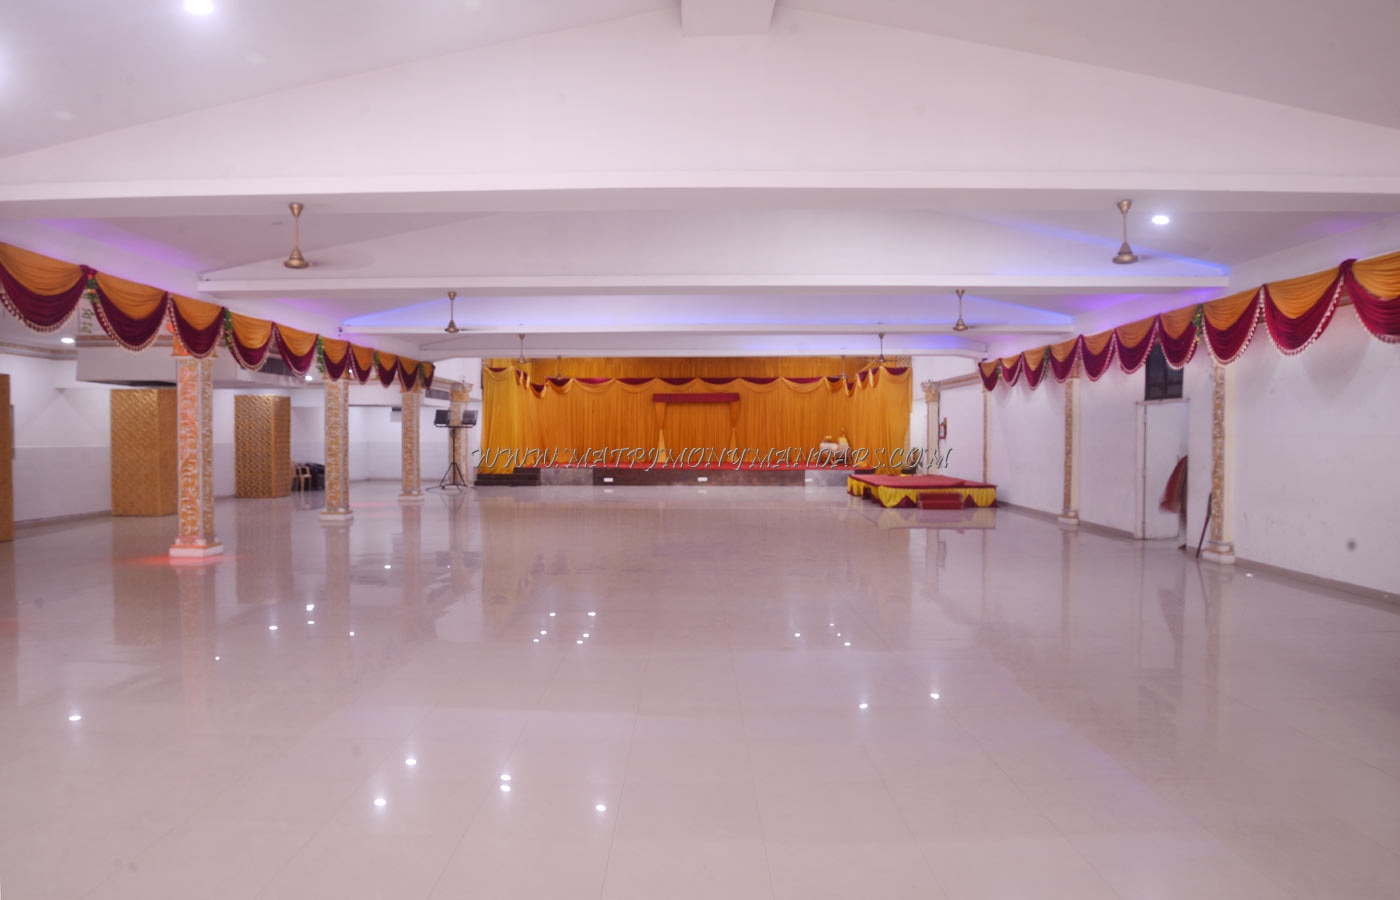 Find the availability of the EVP Rajeswari Marriage Pale 6 (A/C) in Kolapakkam, Chennai and avail special offers